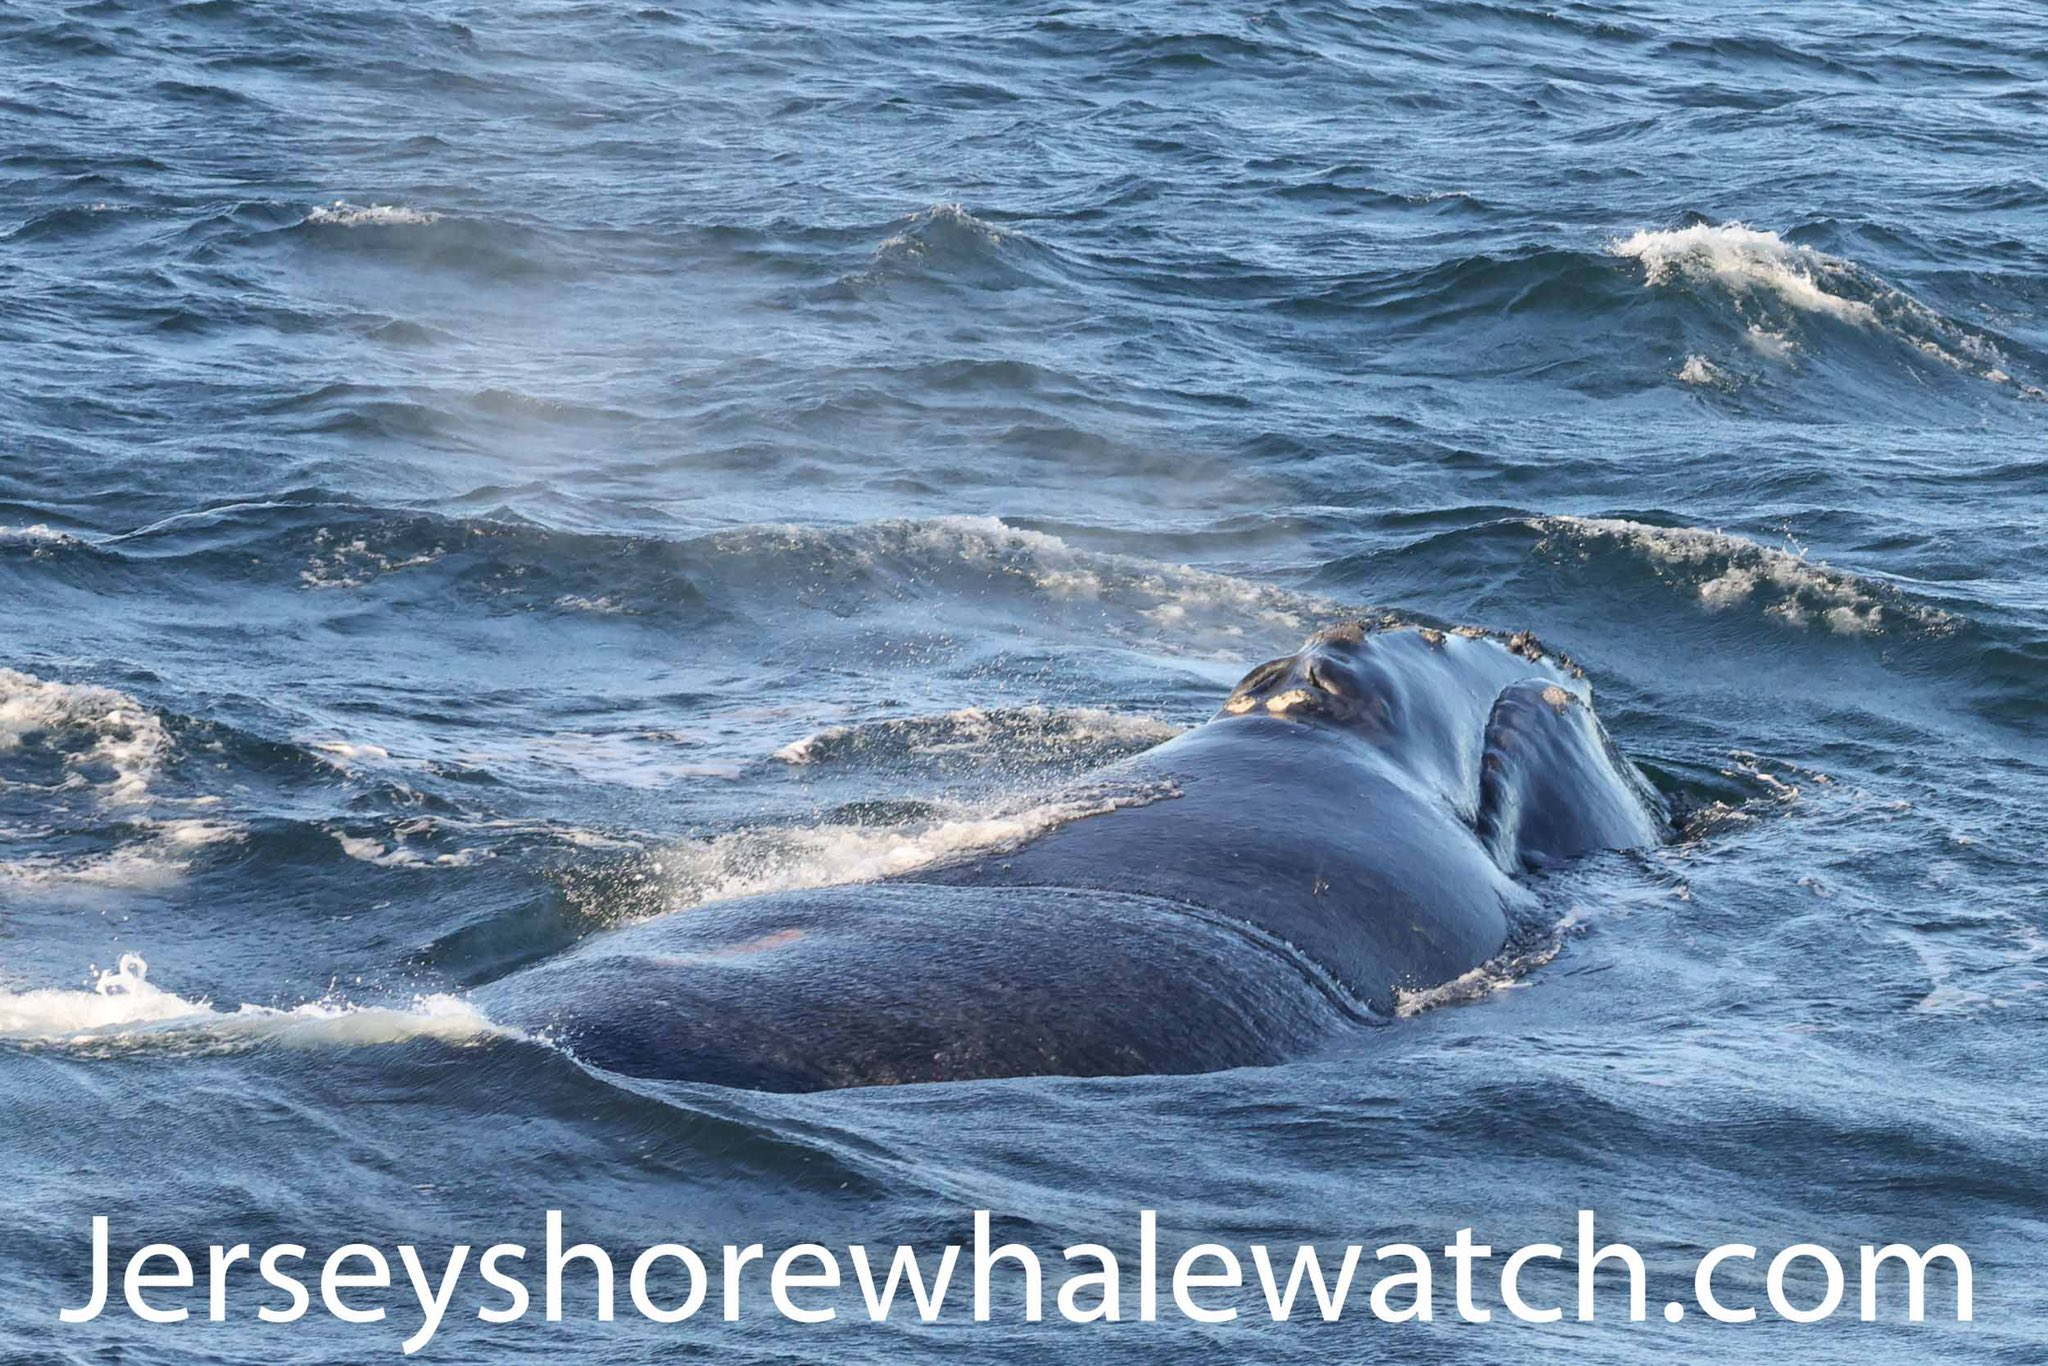 , Rare North American Right Whale photographed Jersey Shore coastline, Jersey Shore Whale Watch Tour 2021 Season